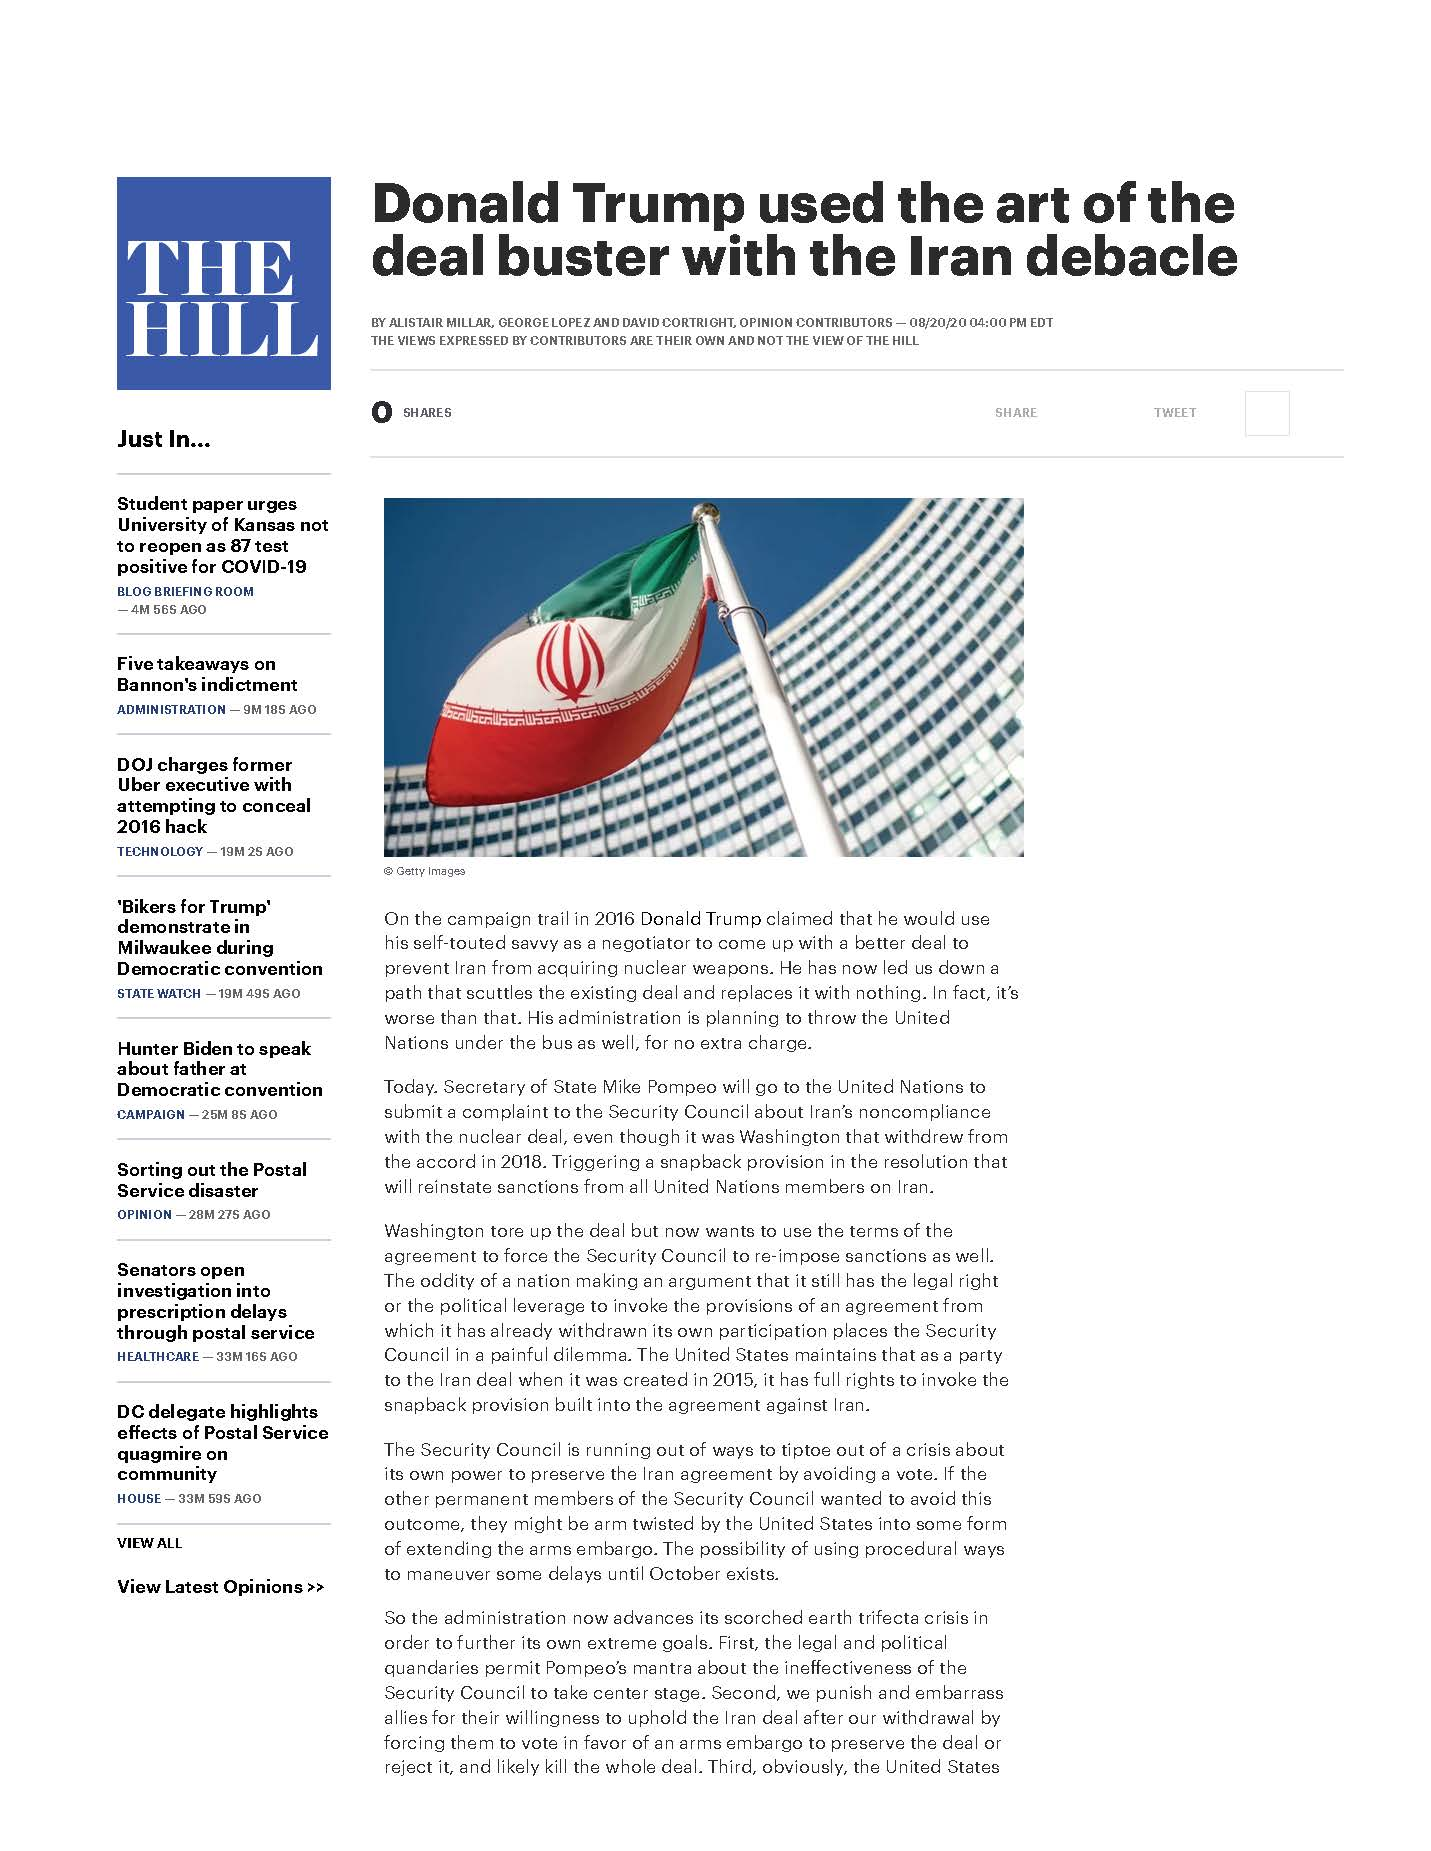 Donald Trump used the Art of the Deal Buster with the Iran Debacle